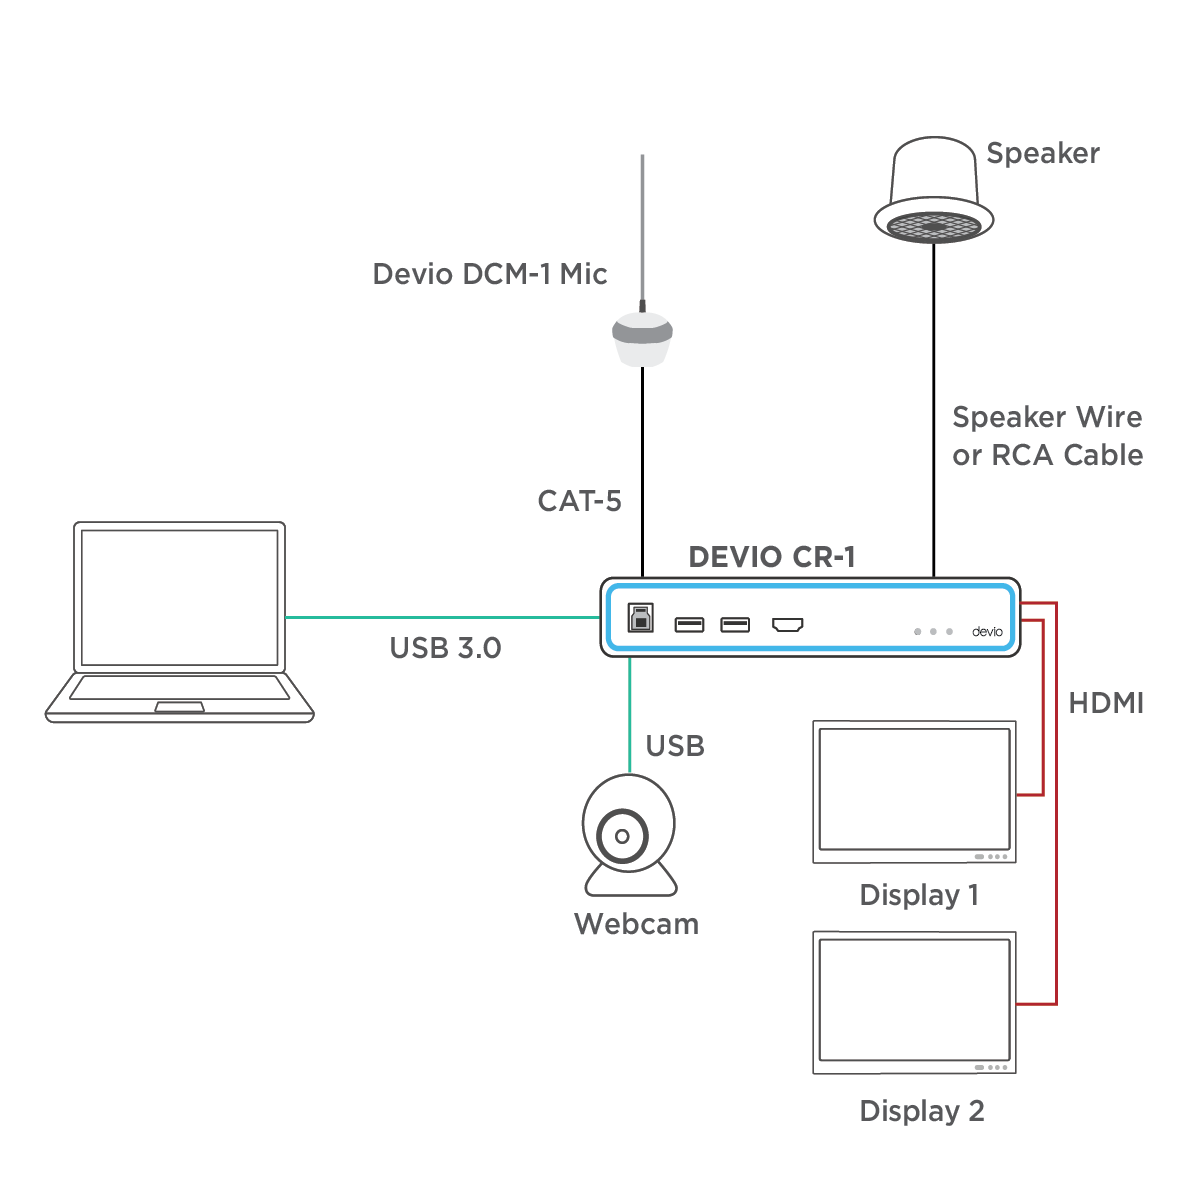 Audio solutions for government installation diagram devio video conferencing 2 connected displays test asfbconference2016 Image collections